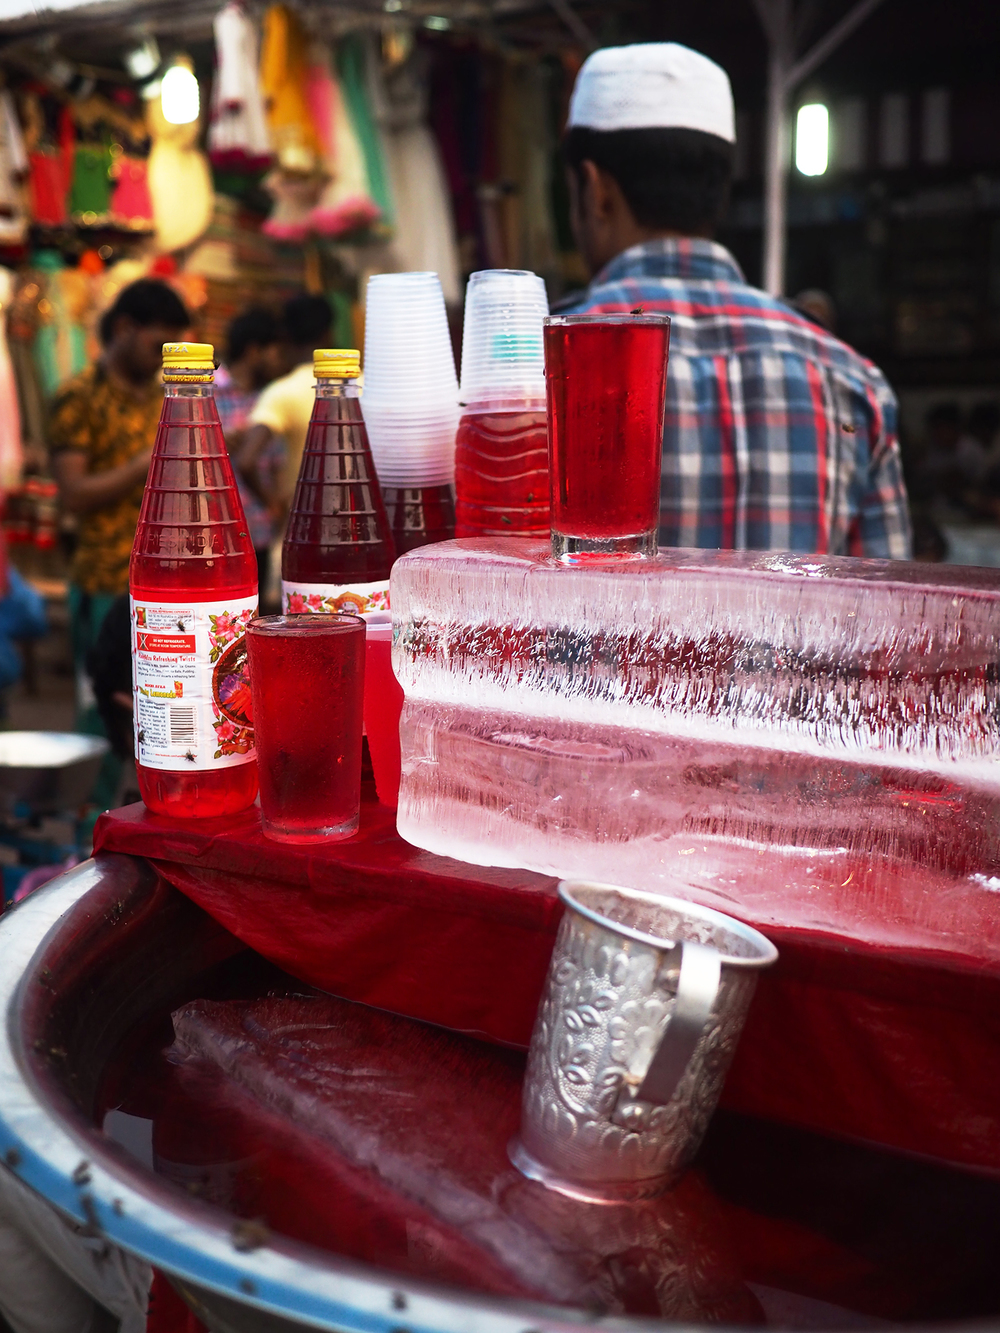 Rooh Afza, a cooling drink made with herbs and flowers, is popular in the market.